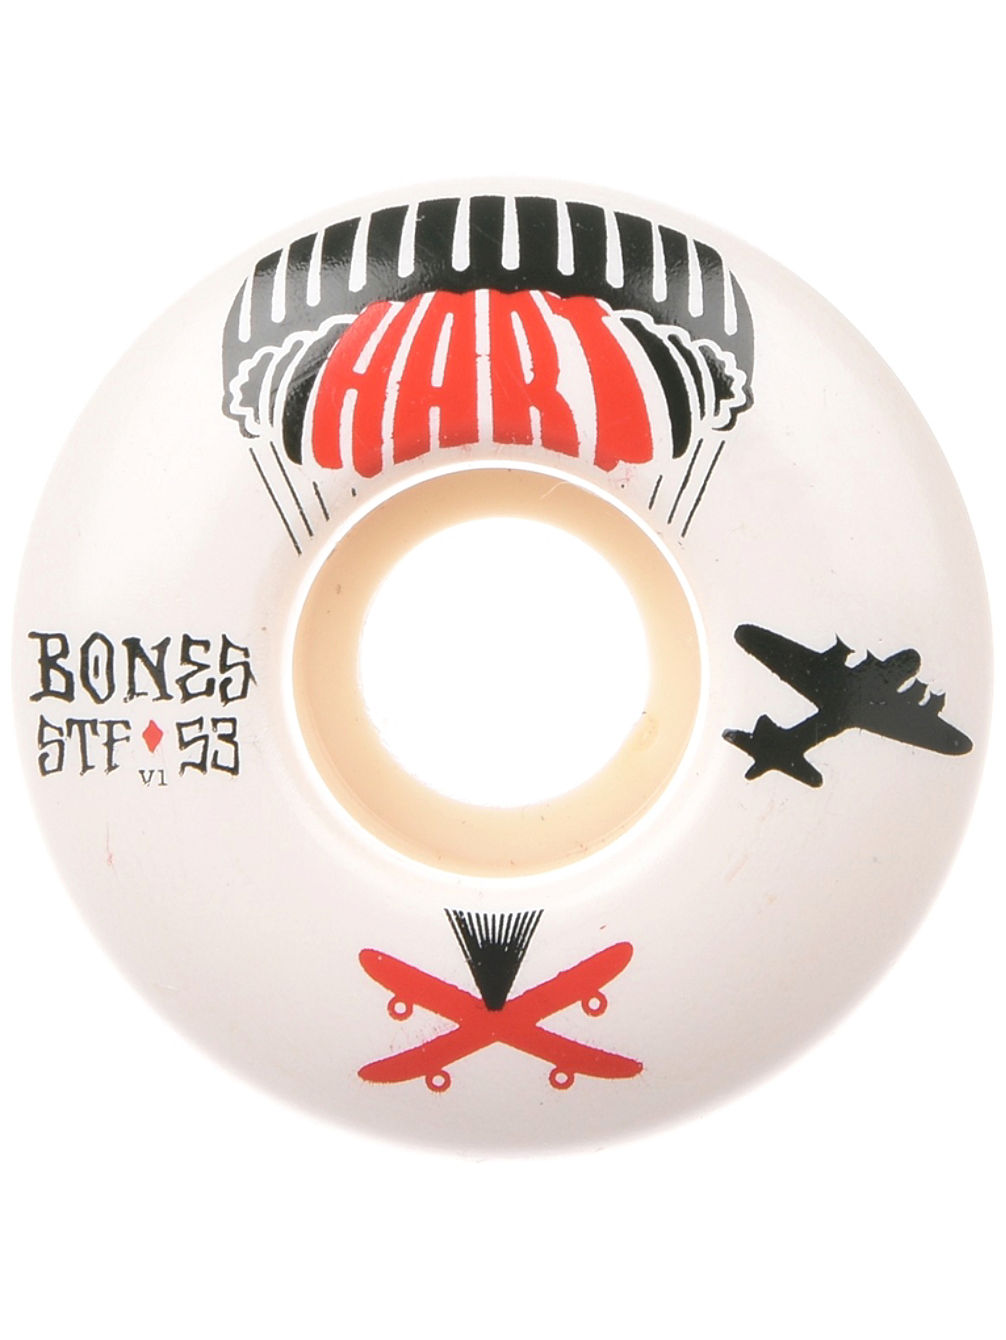 Stf Hart Drop Boards 83B V1 51mm Wheels